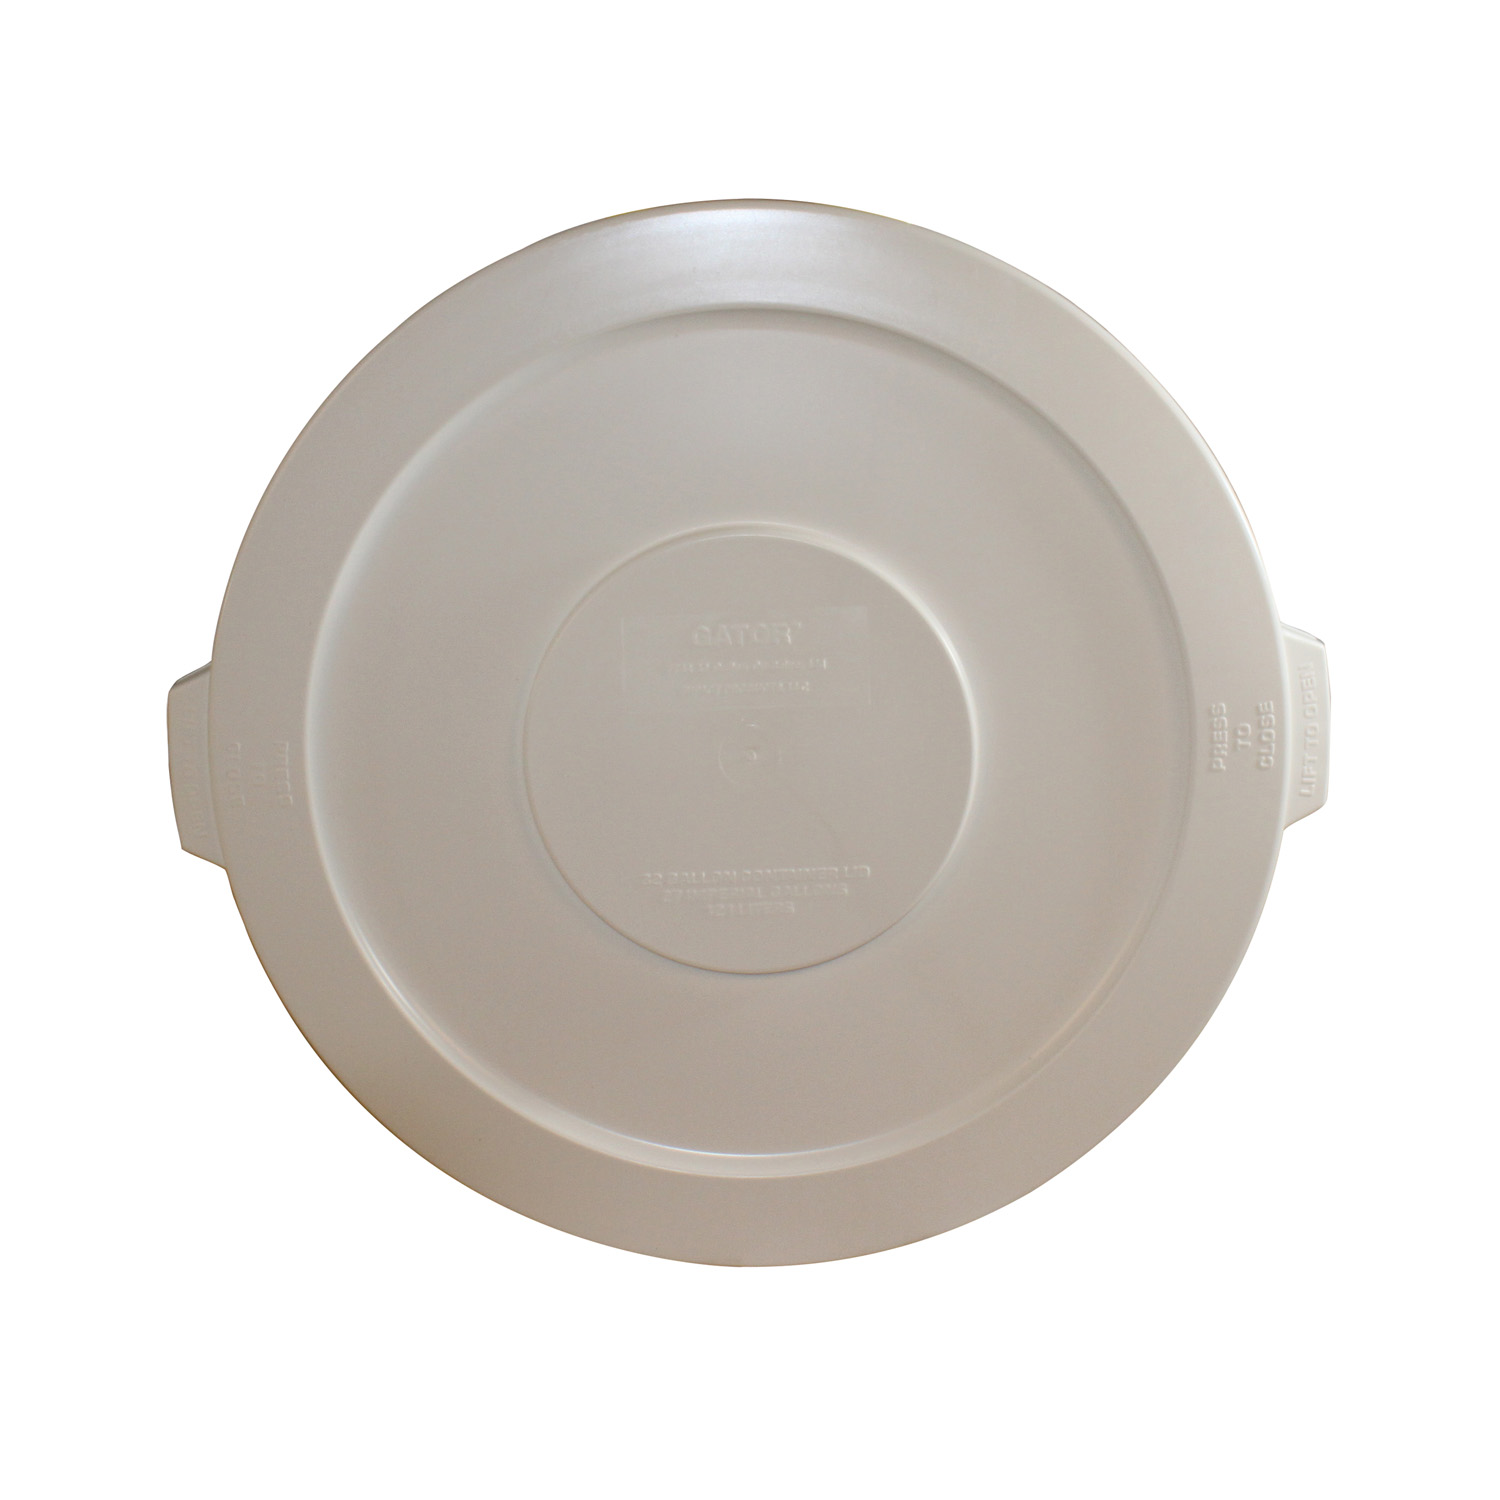 3700-033 Impact Products 7733-1 trash receptacle lid / top